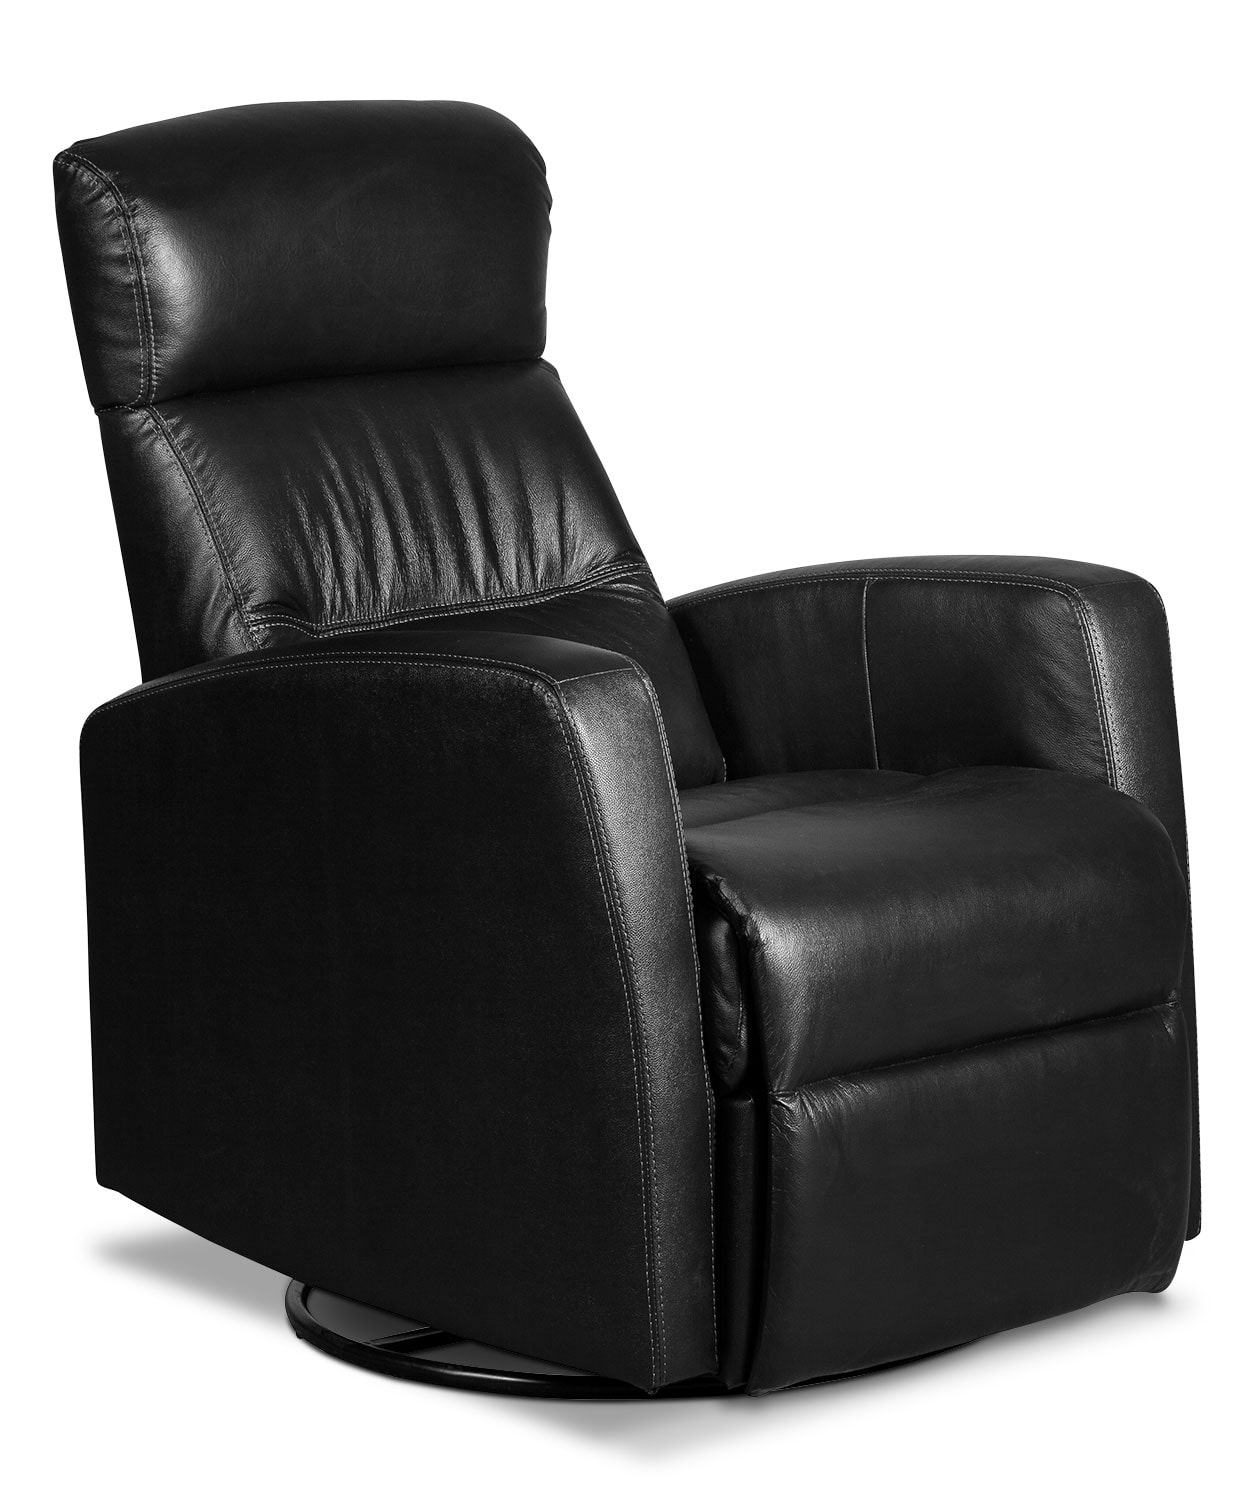 Black Swivel Chair Penny Genuine Leather Swivel Rocker Reclining Chair